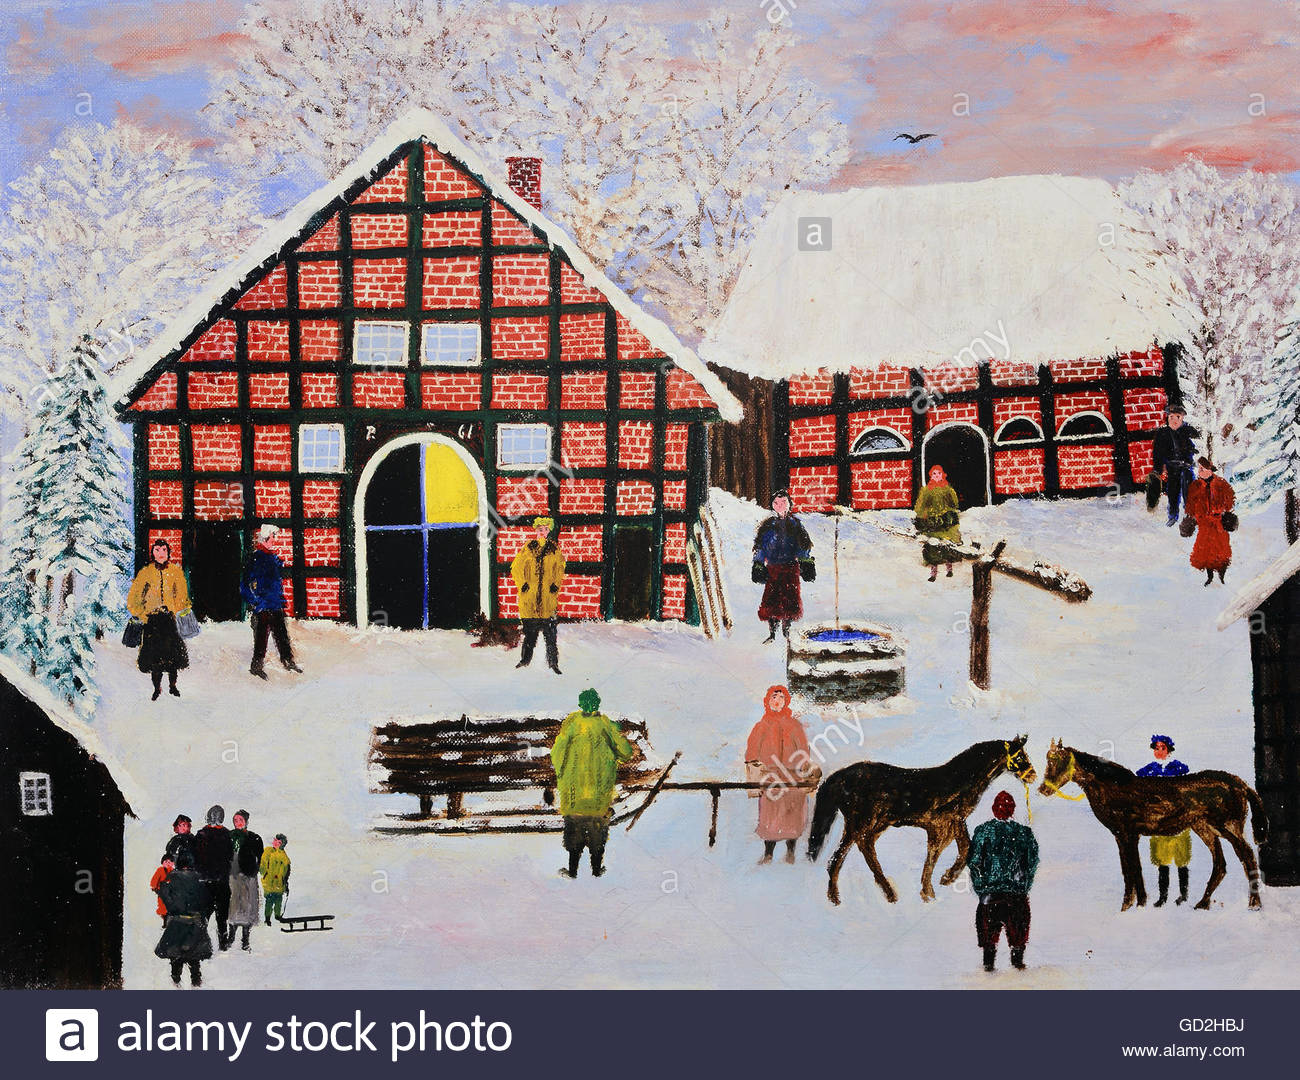 fine arts, Rusche, Dr. Waldemar, called 'Paps' (1882 - 1965), painting, 'Oberneuland im Winter' - Stock Image